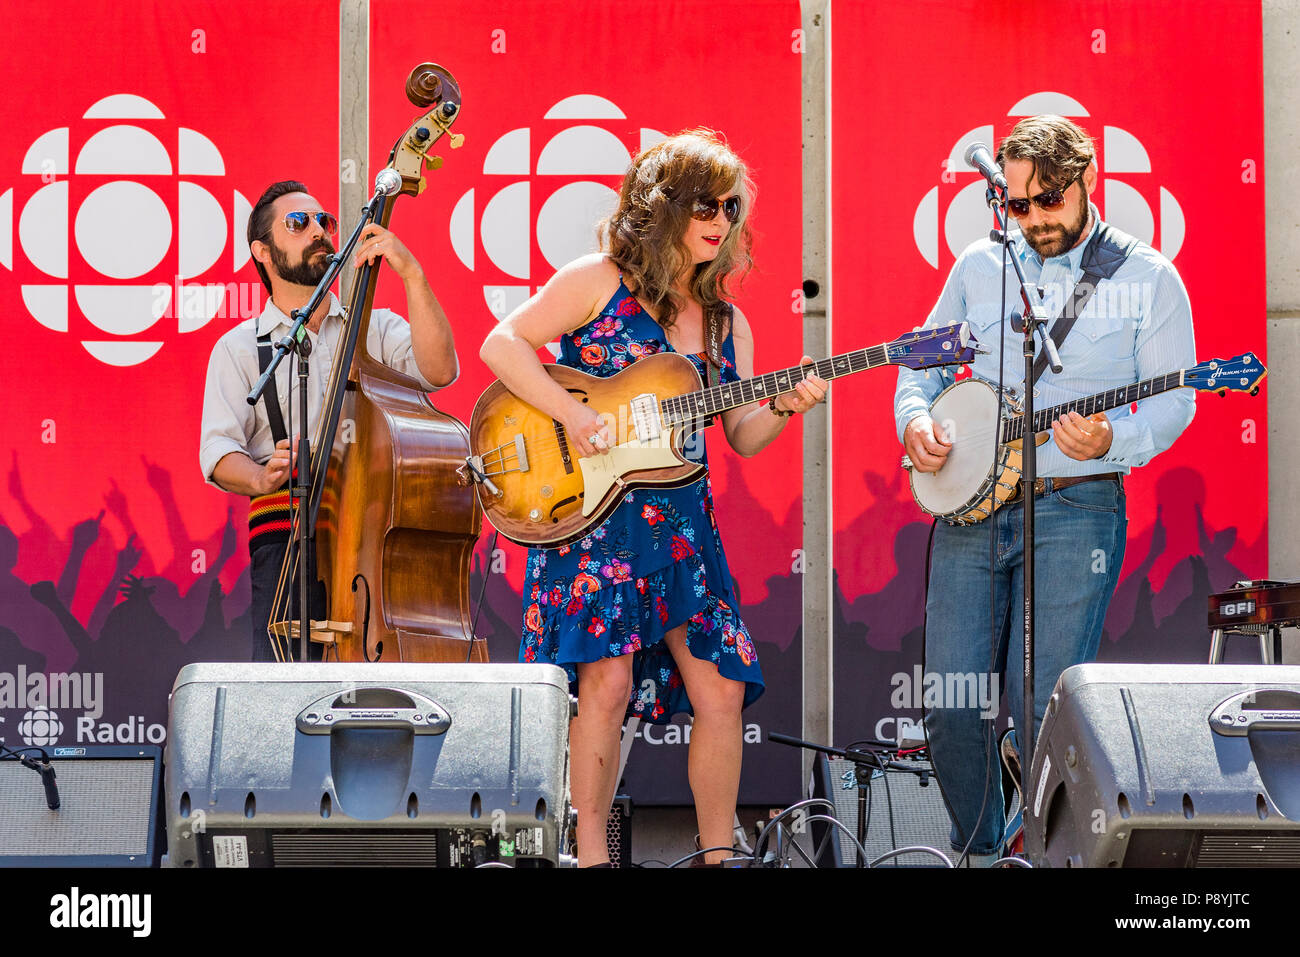 Little Miss Higgins in concert at CBC Musical Nooners, Vancouver, British Columbia, Canada. Stock Photo